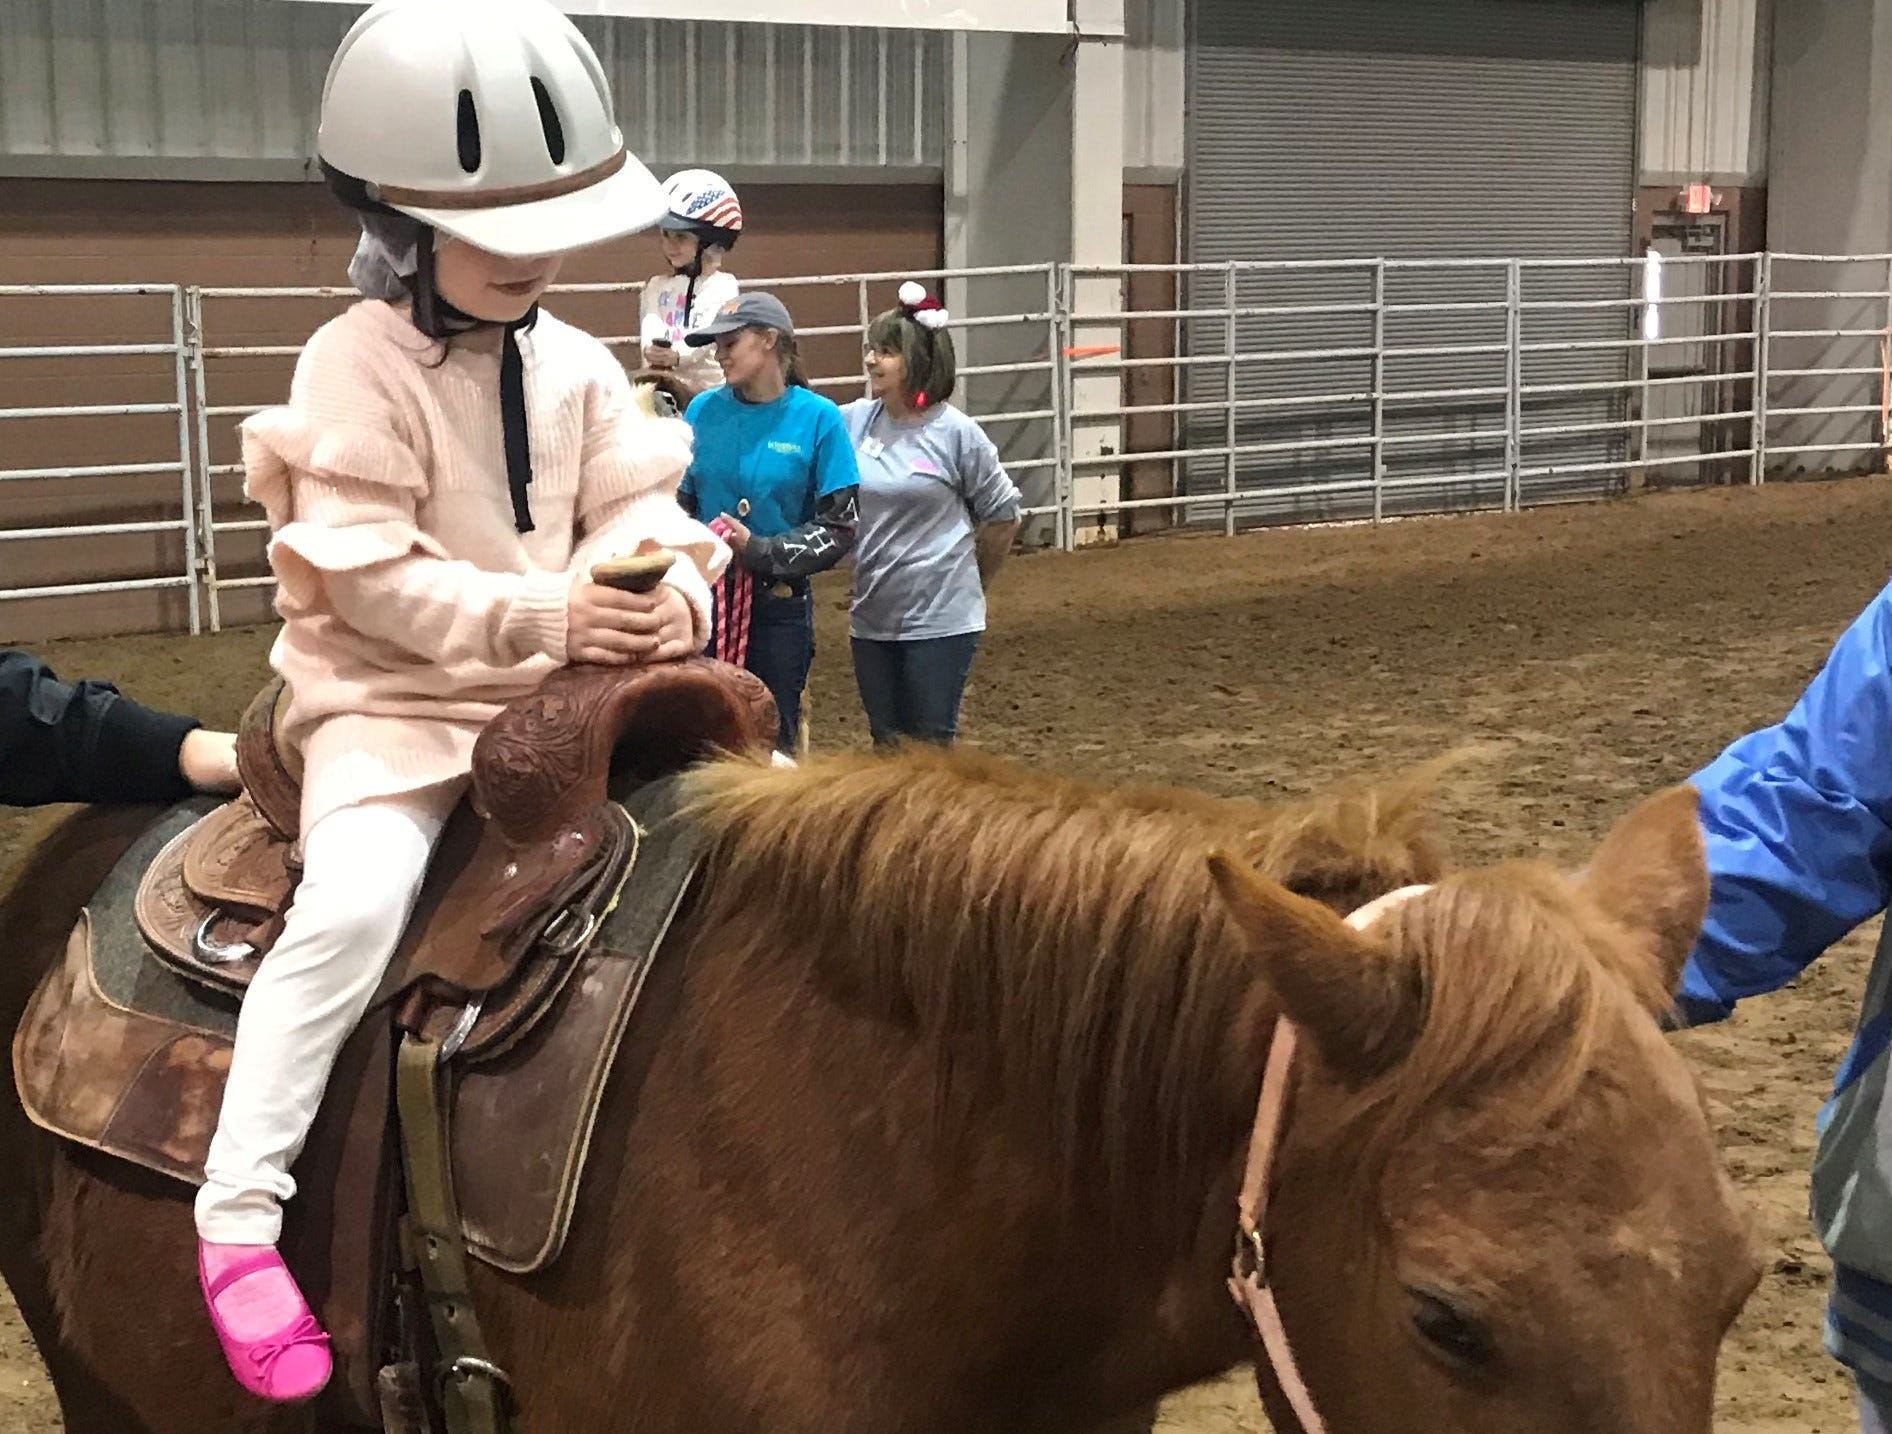 Kaya Knight rides Cricket on Dec. 25, 2018 during the Hope, Love and Horses event hosted by Sonrisas Trails and Stone Arbor Farms at 1st Community Federal Credit Union Spur Arena.